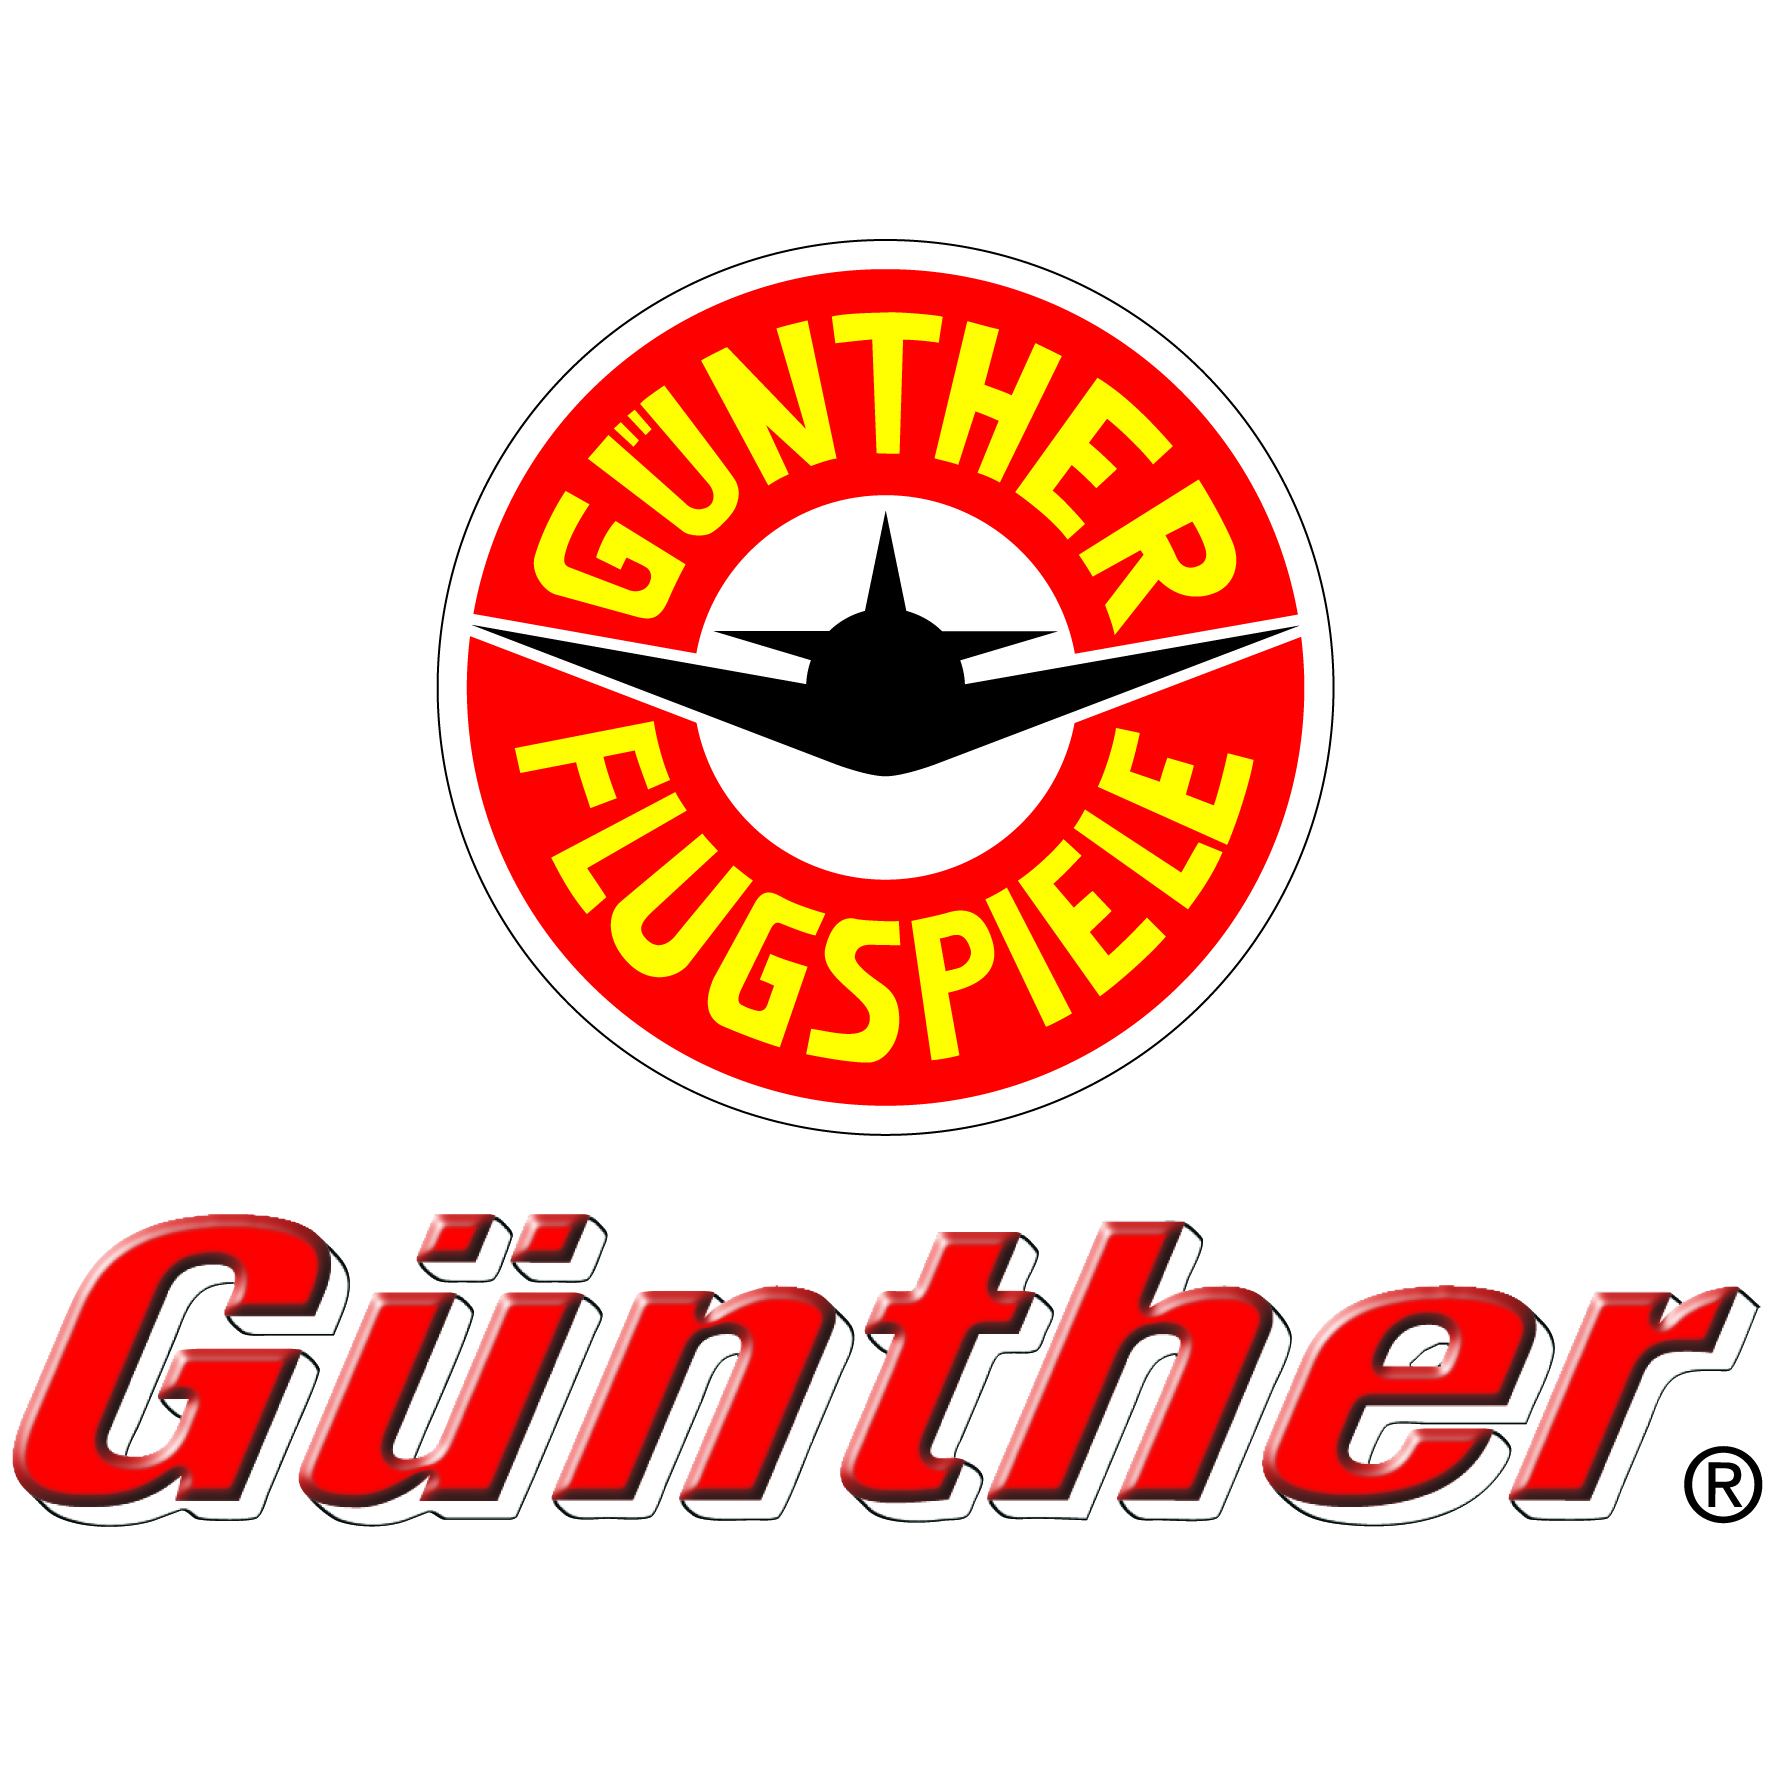 Paul Günther GmbH & Co. Kg